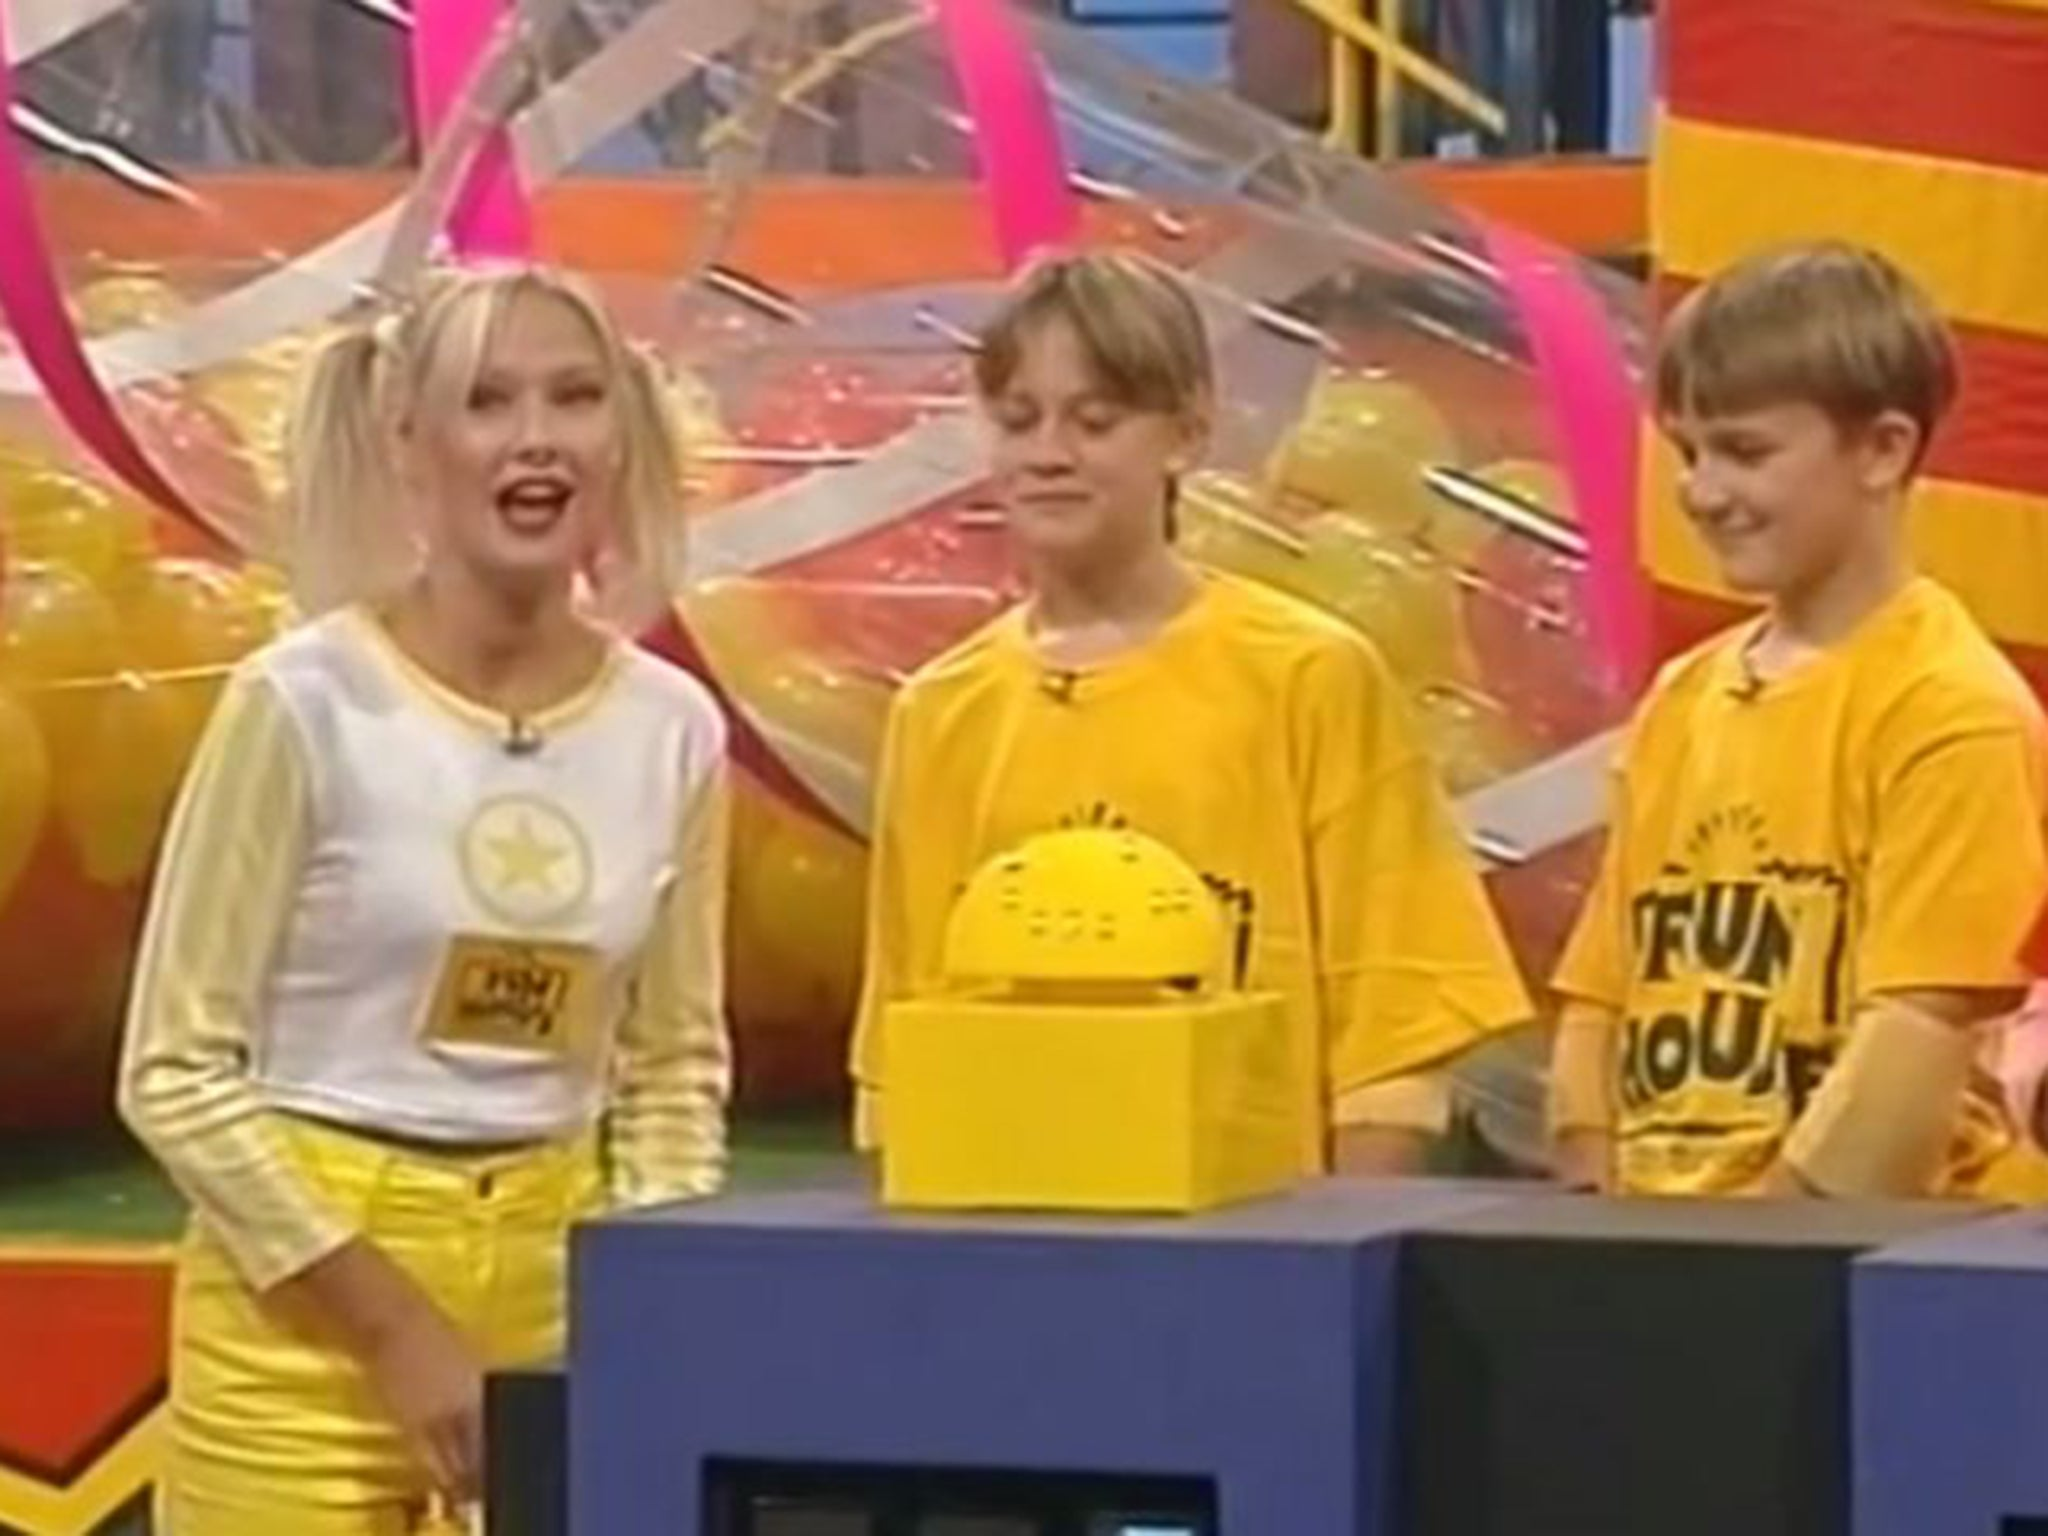 funhouse girls students